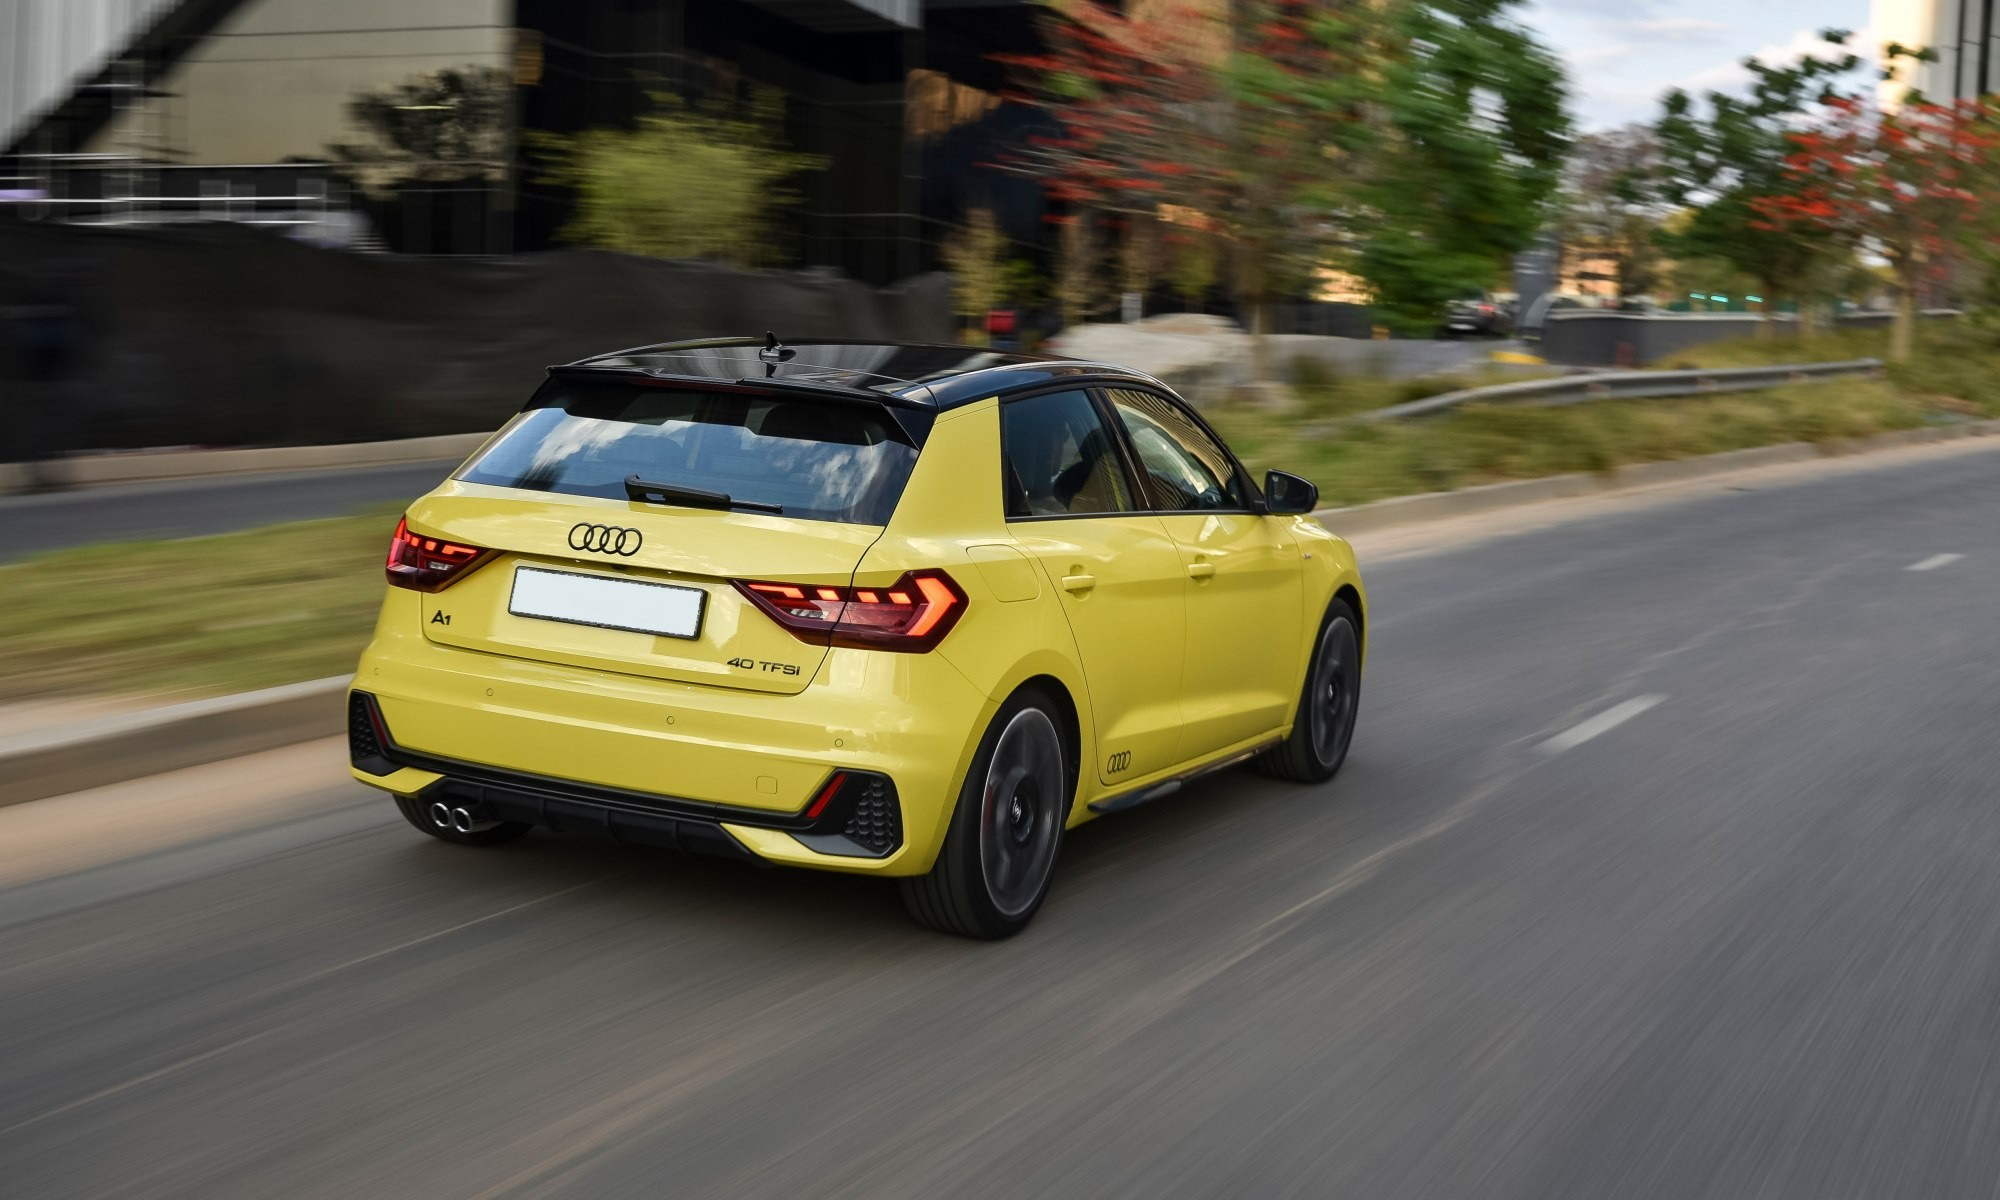 Audi A1 35 TFSI Advanced rear